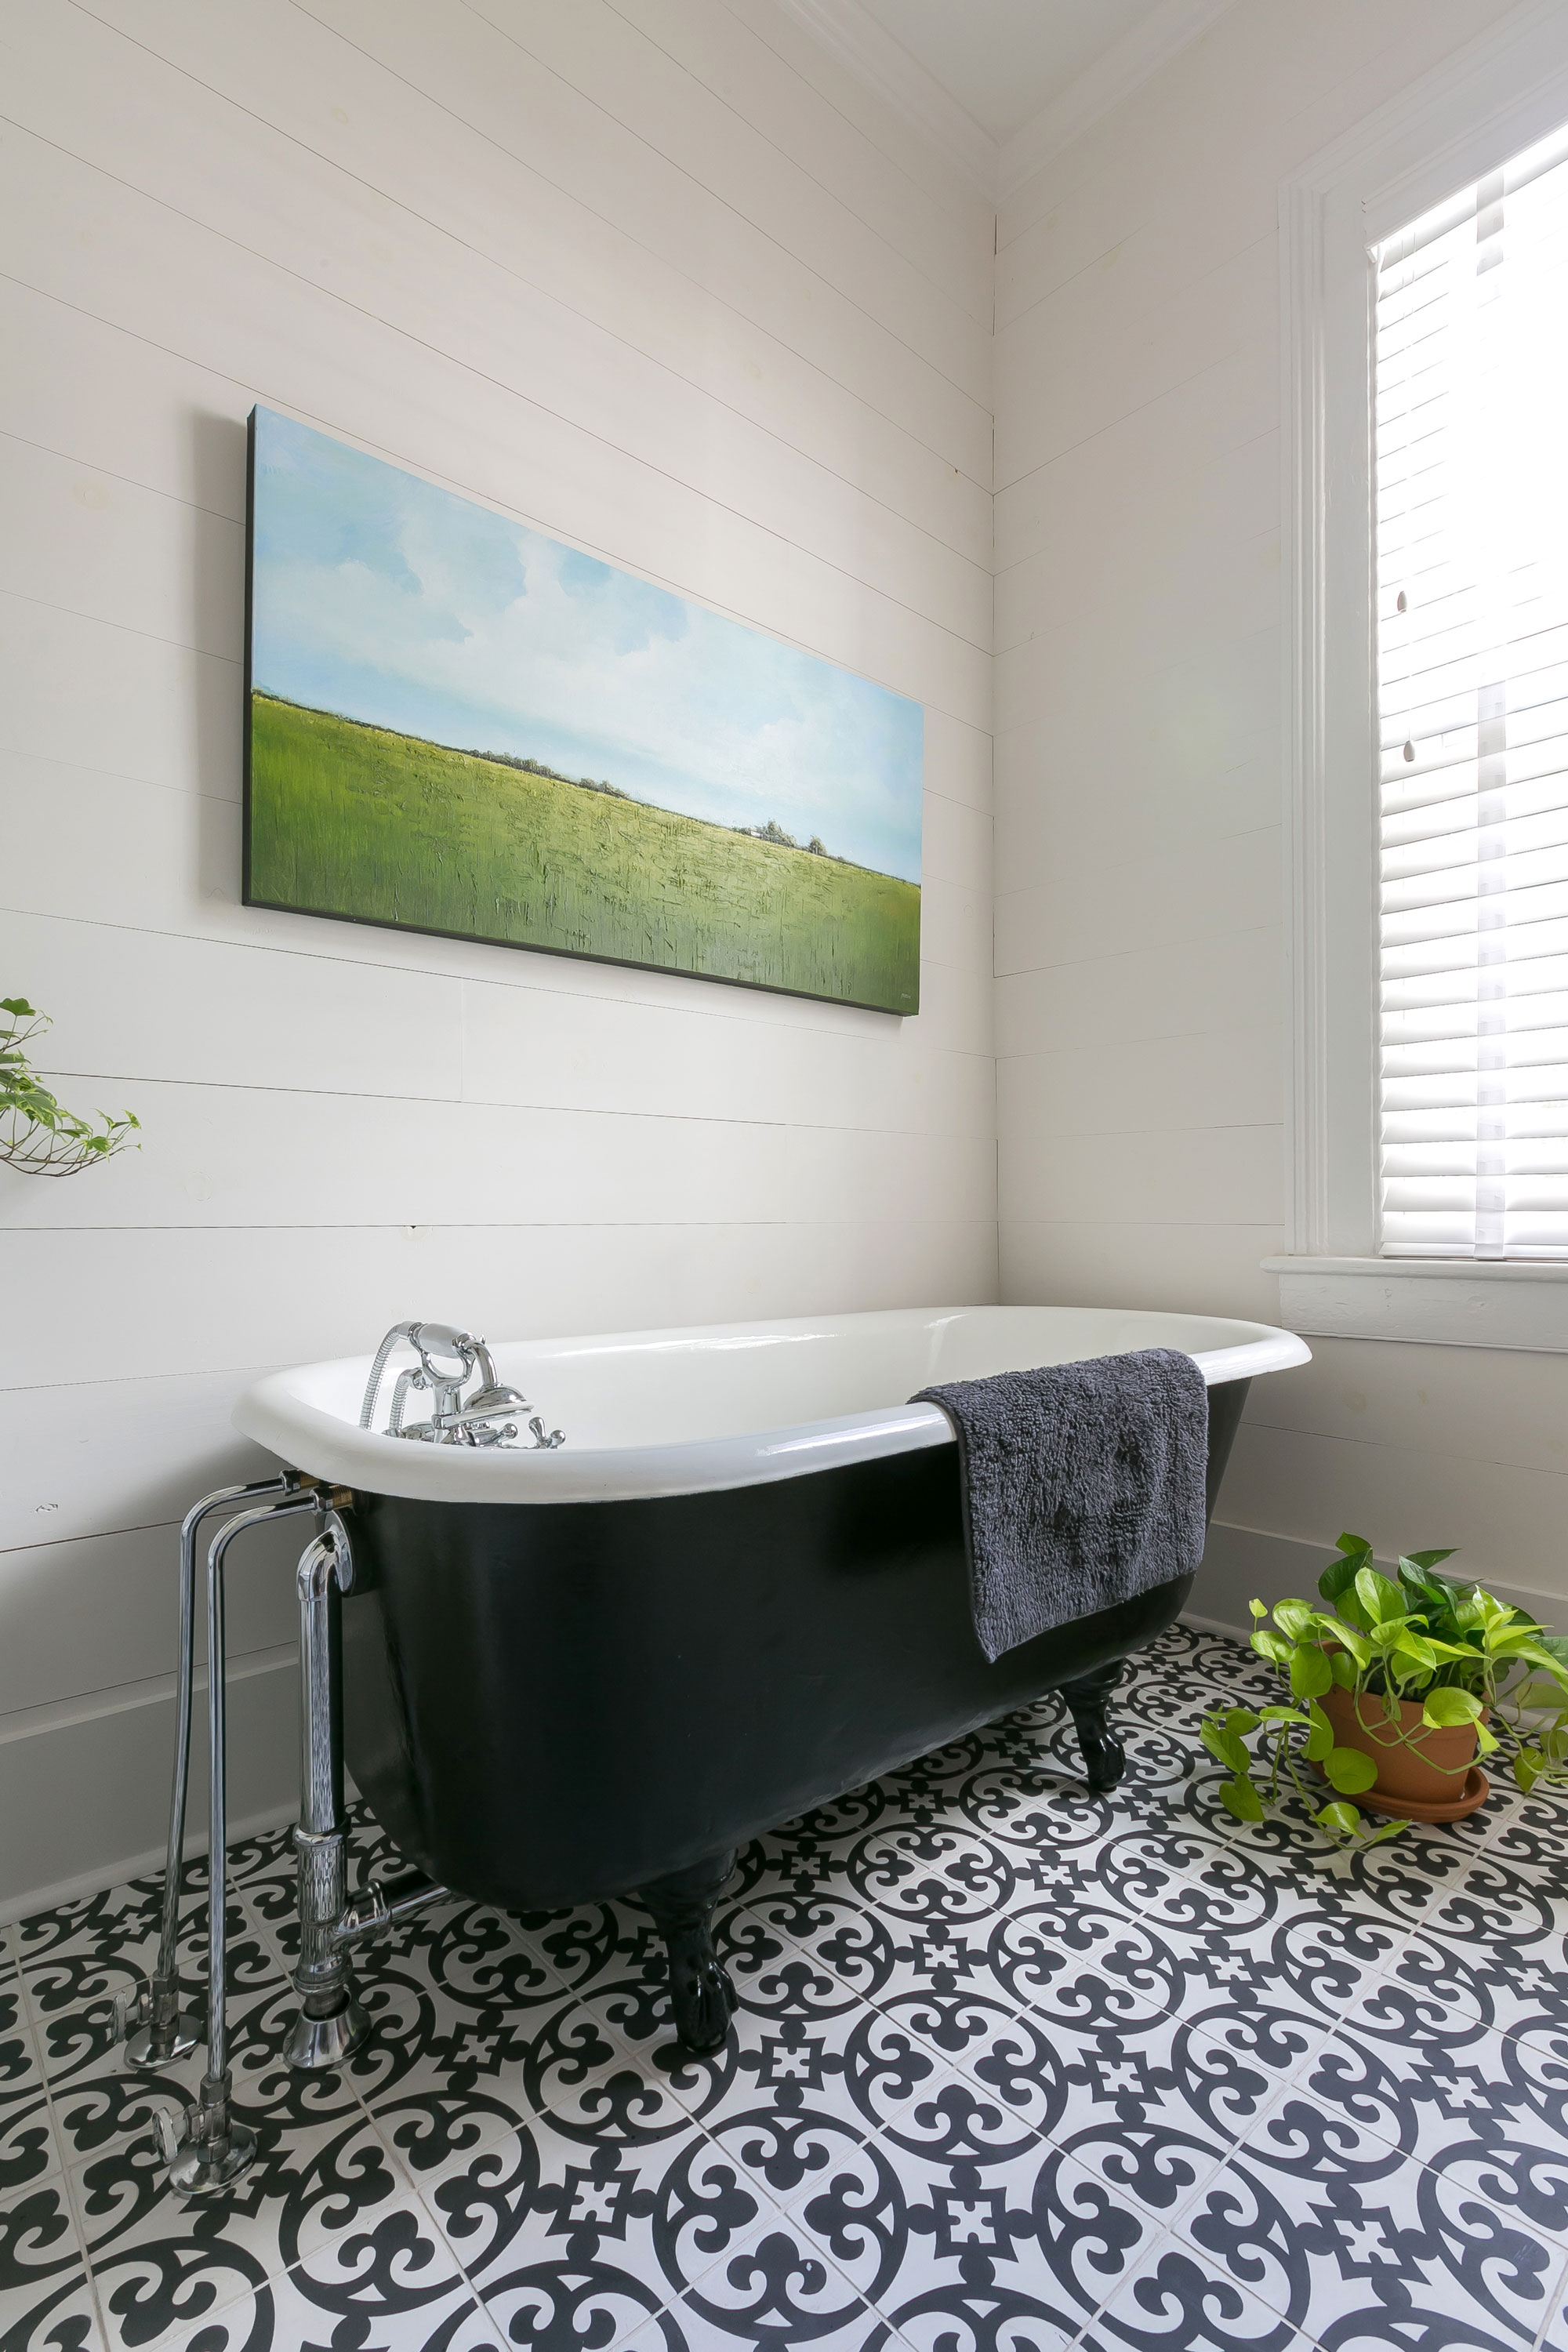 Doar house bathroom renovation with period details using modern fixture and amenities